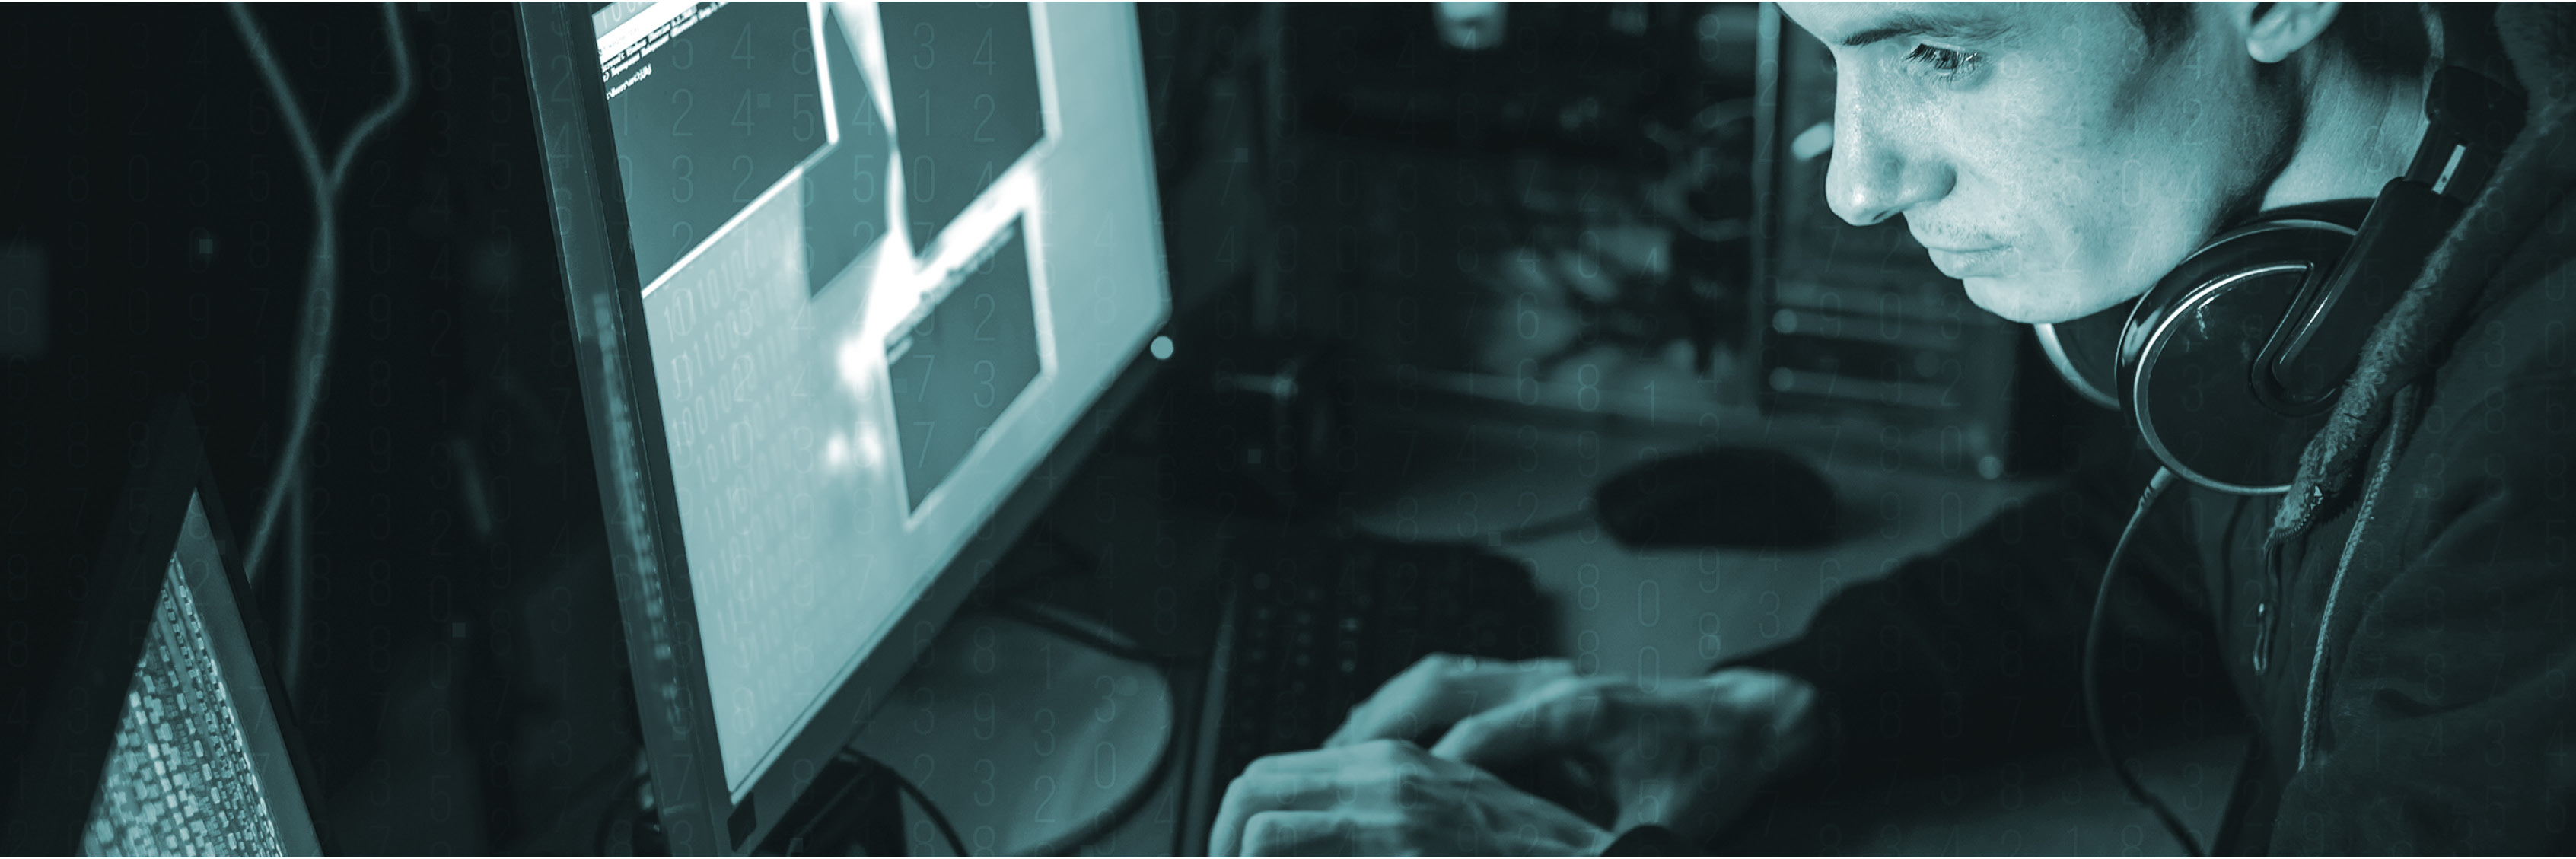 How to Prevent Malware Hackers from Accessing Your Software